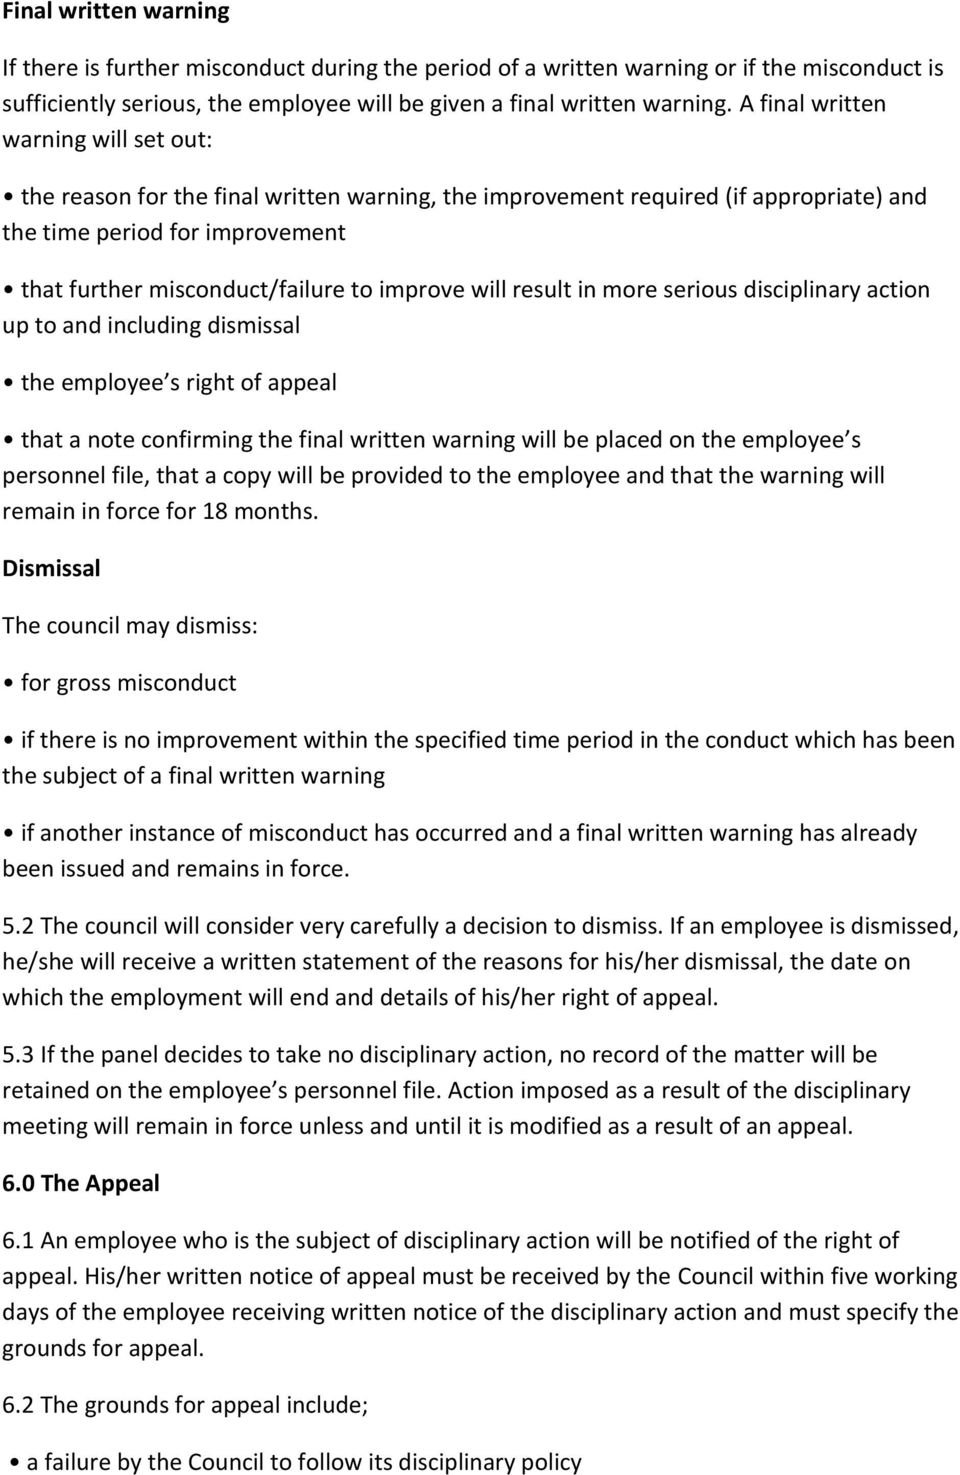 improve will result in more serious disciplinary action up to and including dismissal the employee s right of appeal that a note confirming the final written warning will be placed on the employee s